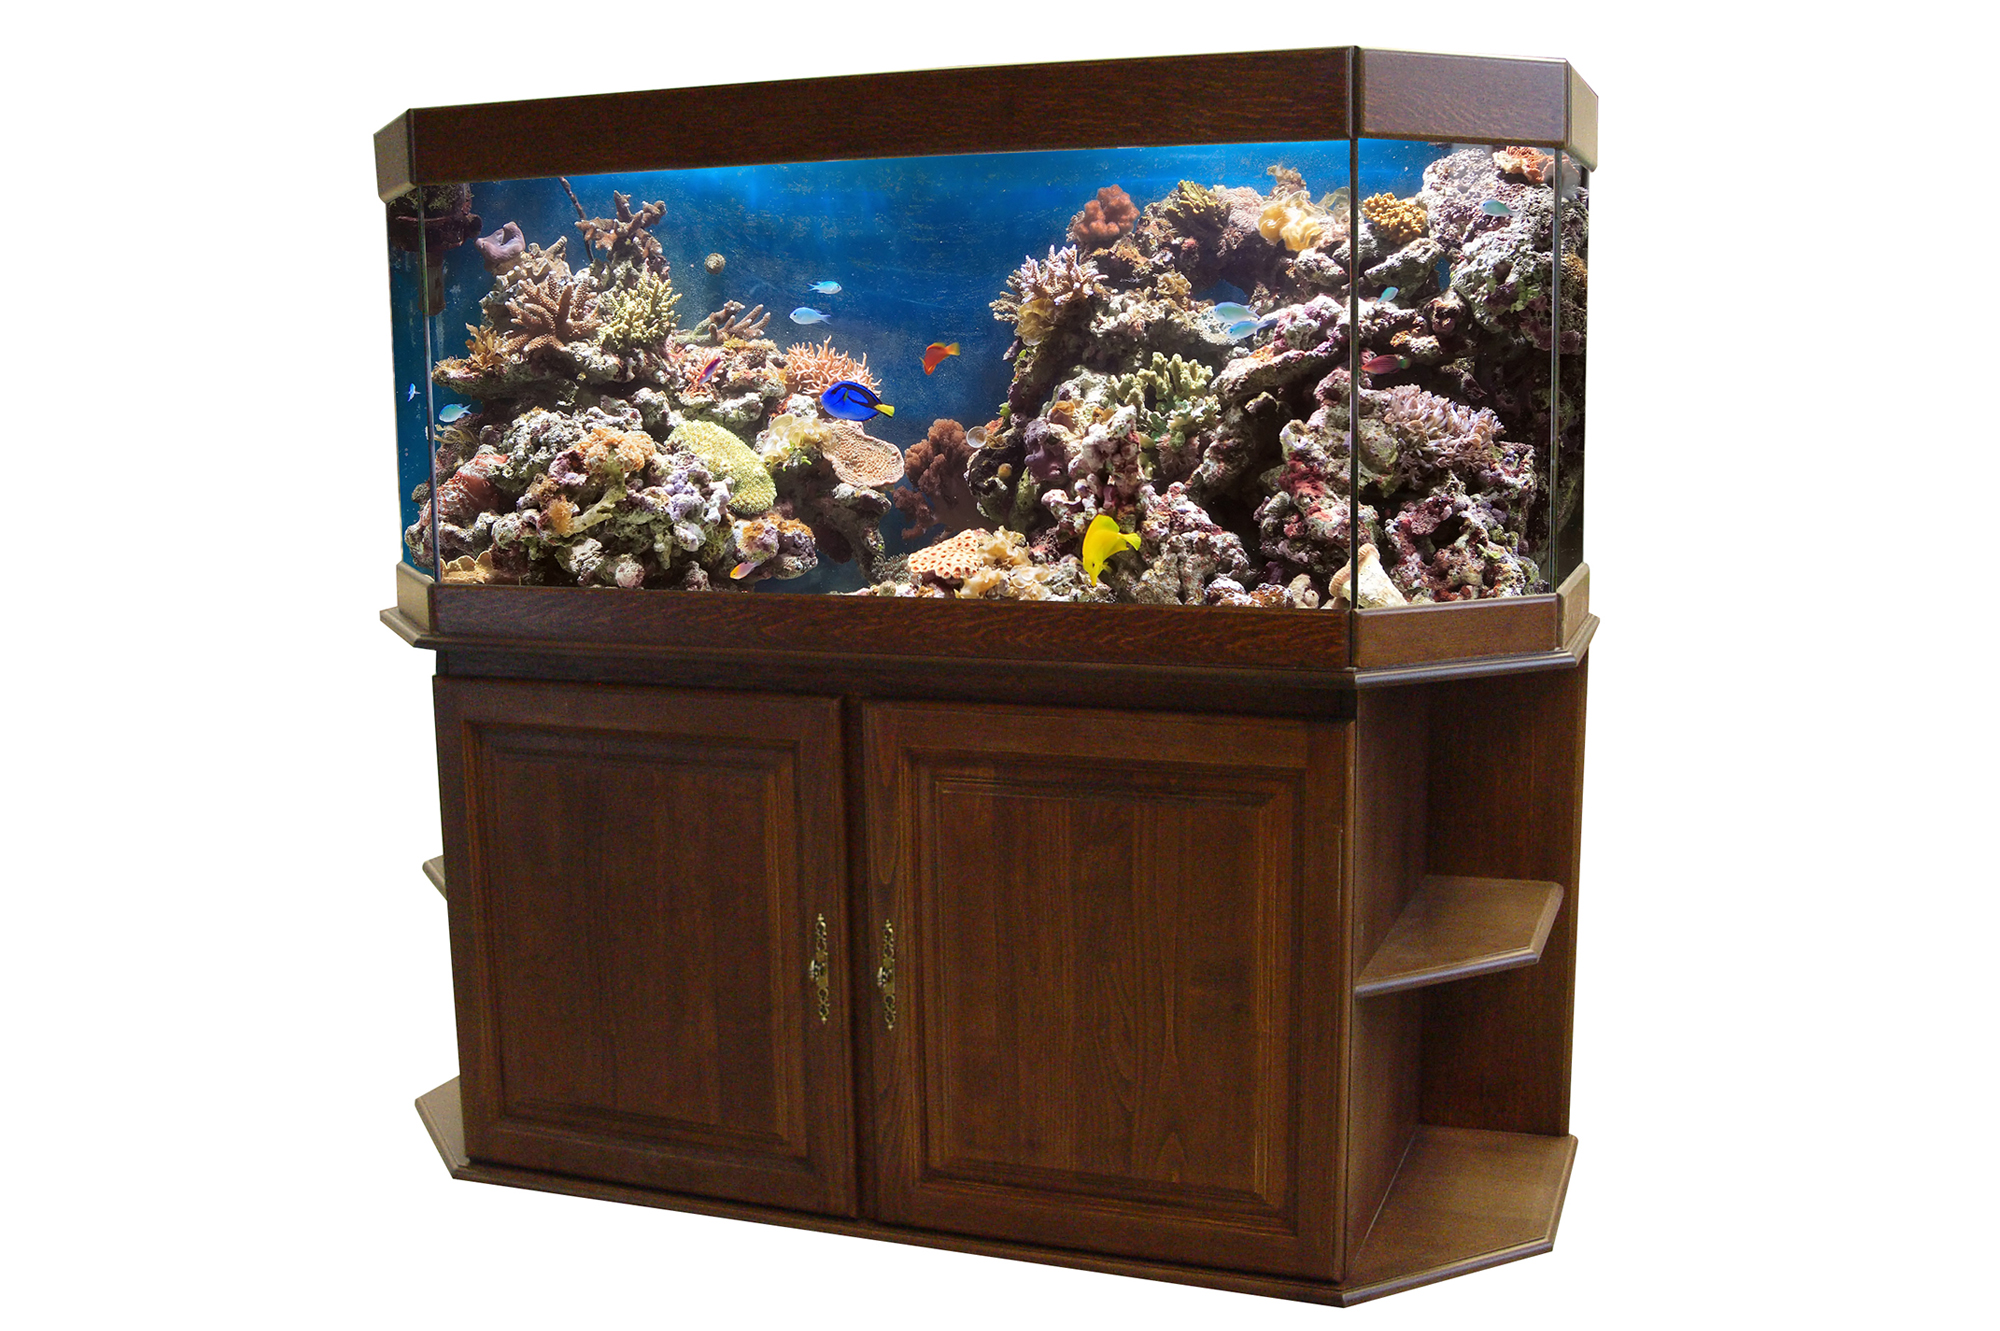 Aquariums et terrariums sur mesure 31 hp aquarium - Meuble aquarium sur mesure ...